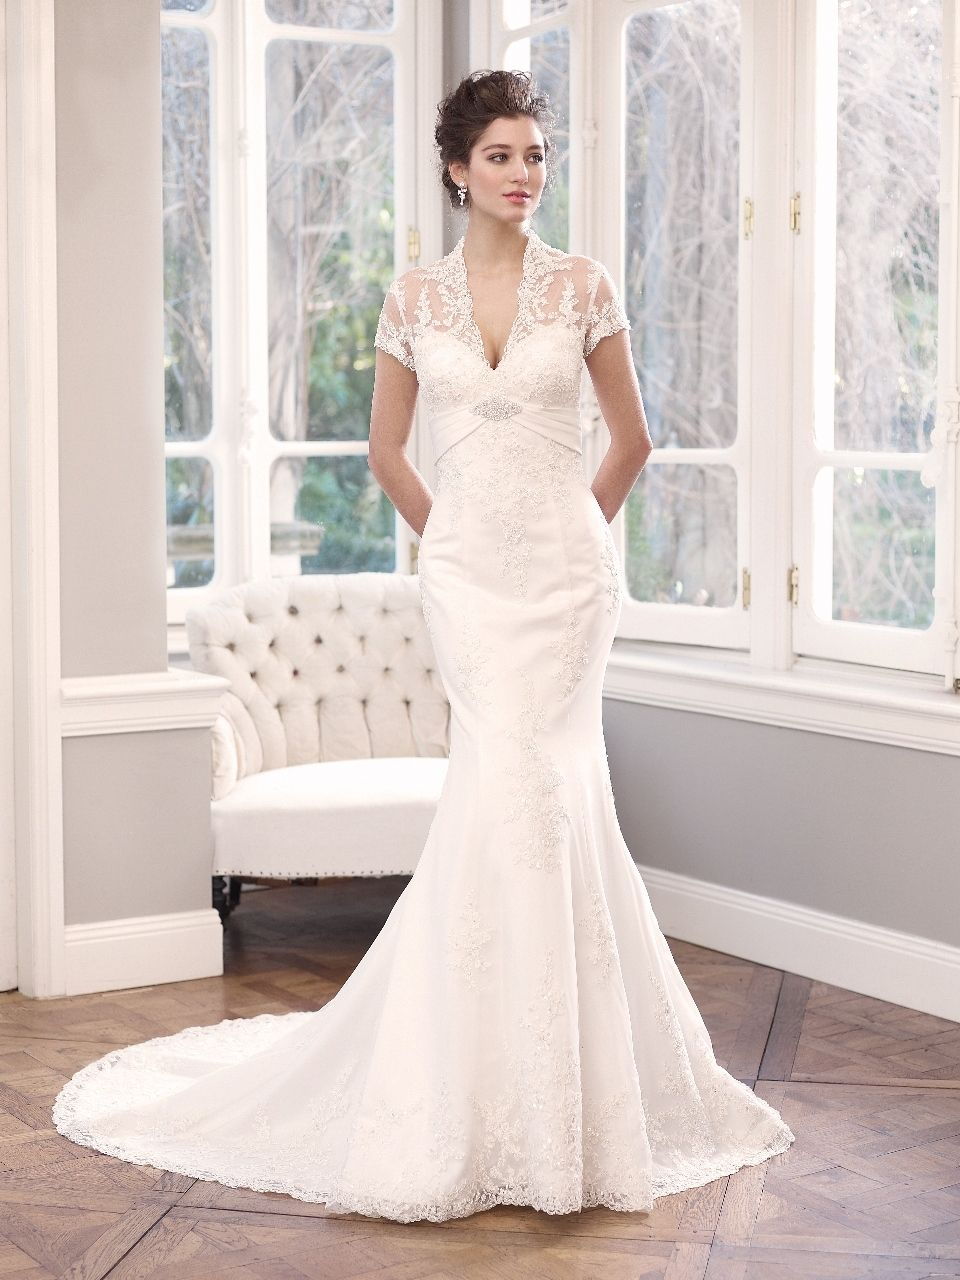 Wedding dress with collar  Luv Bridal  MZ Lace Wedding Dress with Scalloped Collar